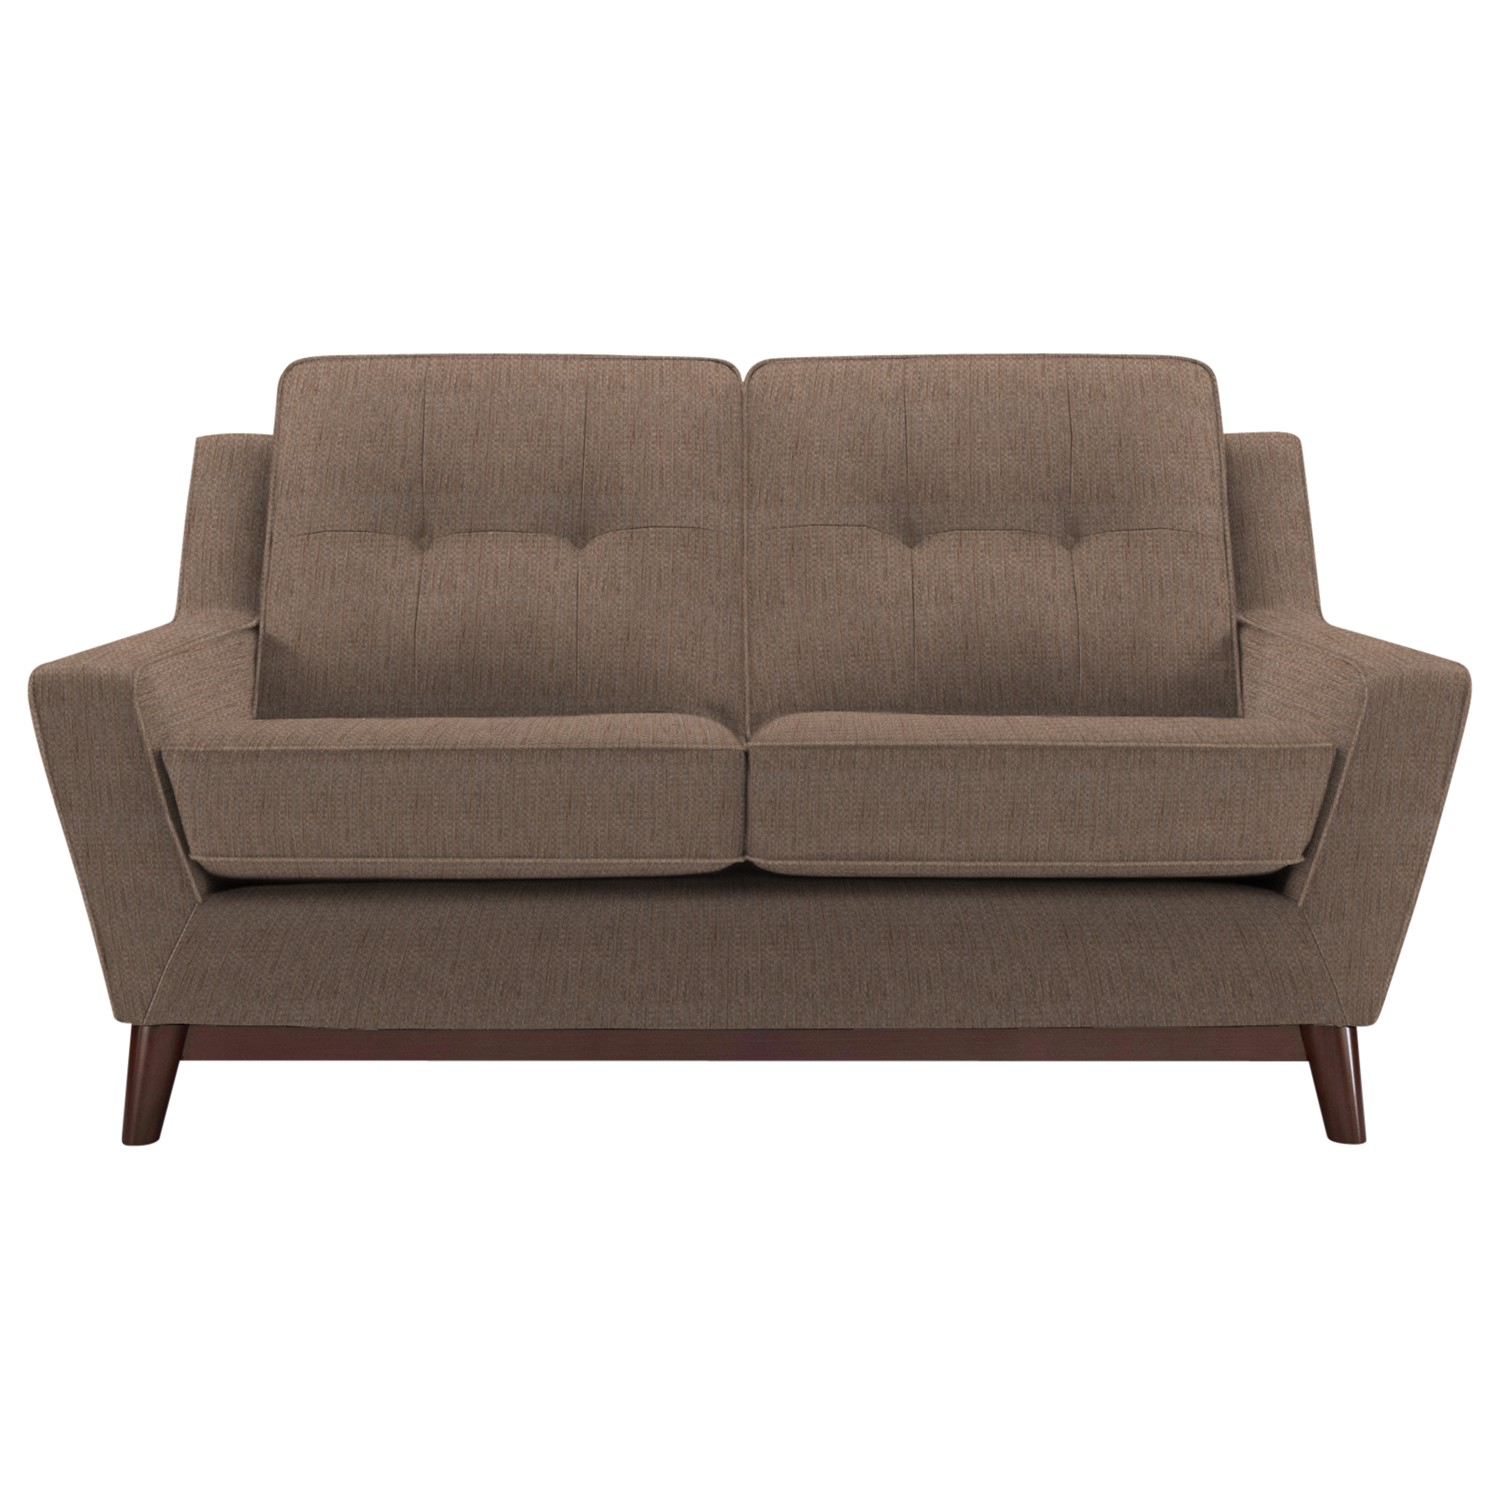 Cheap Couches Sale Online